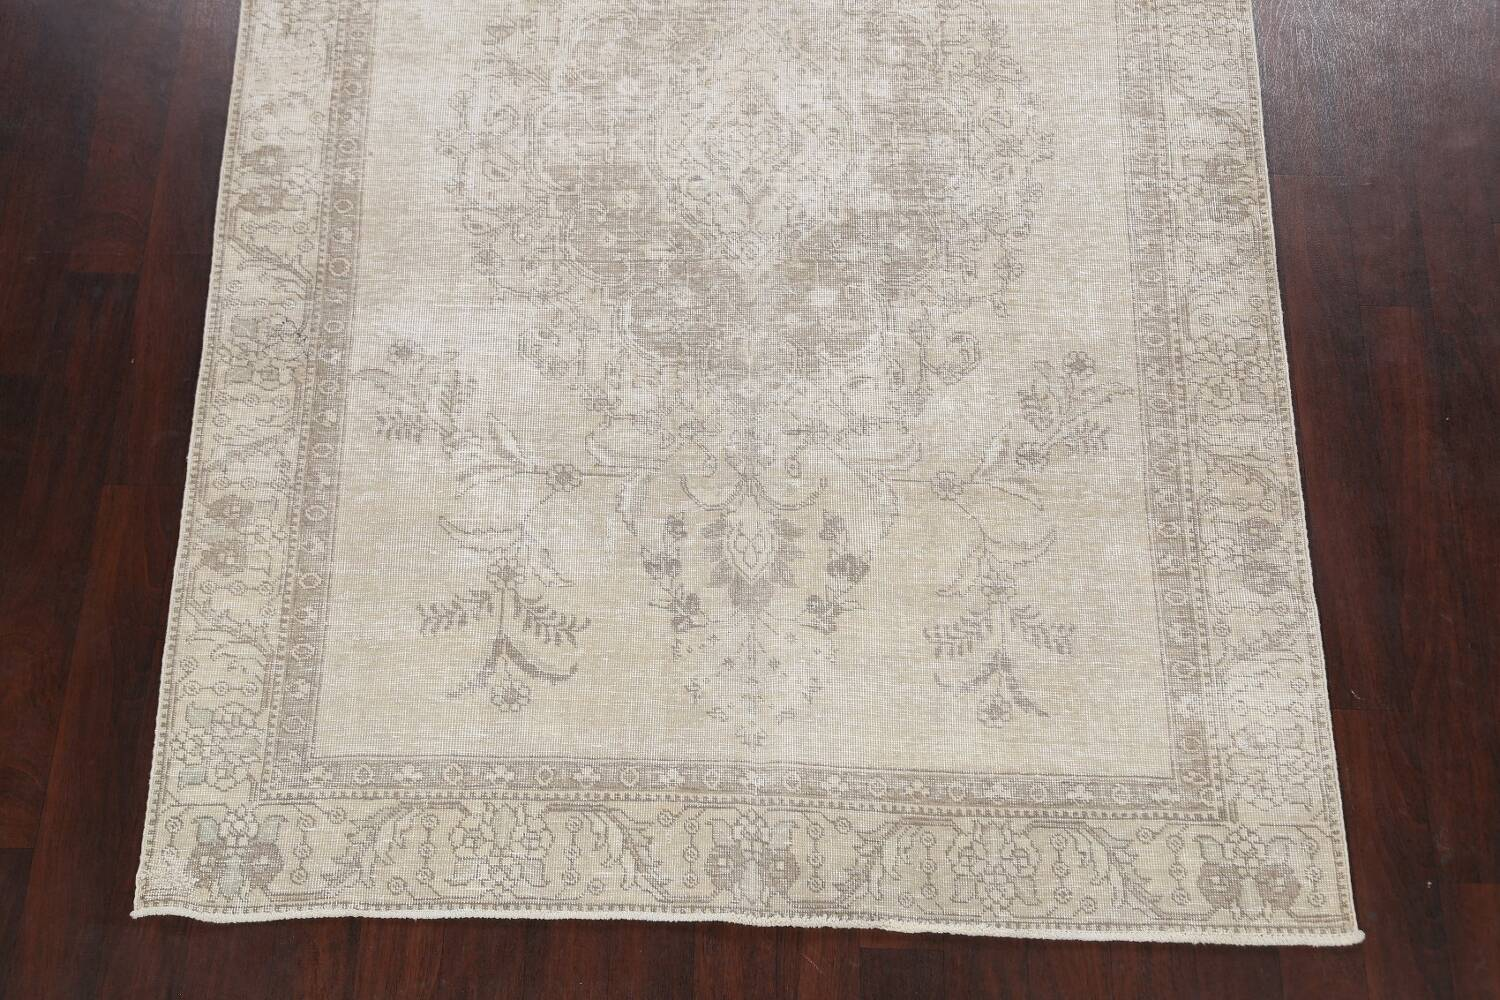 Muted Distressed Floral Tabriz Persian Area Rug 6x9 image 8